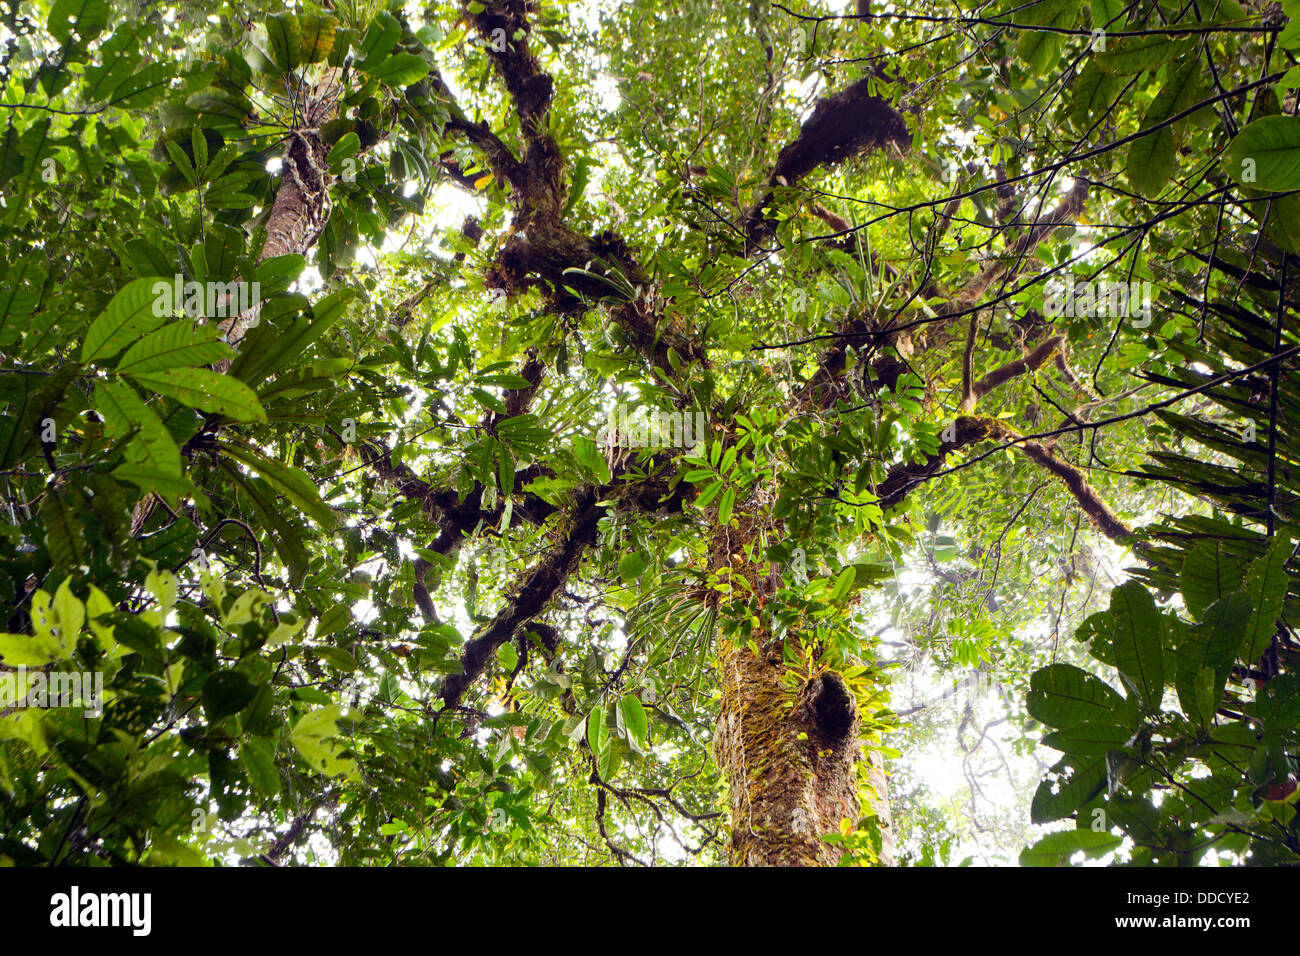 Looking upwards to the canopy of tropical rainforest in the Ecuadorian Amazon Stock Photo